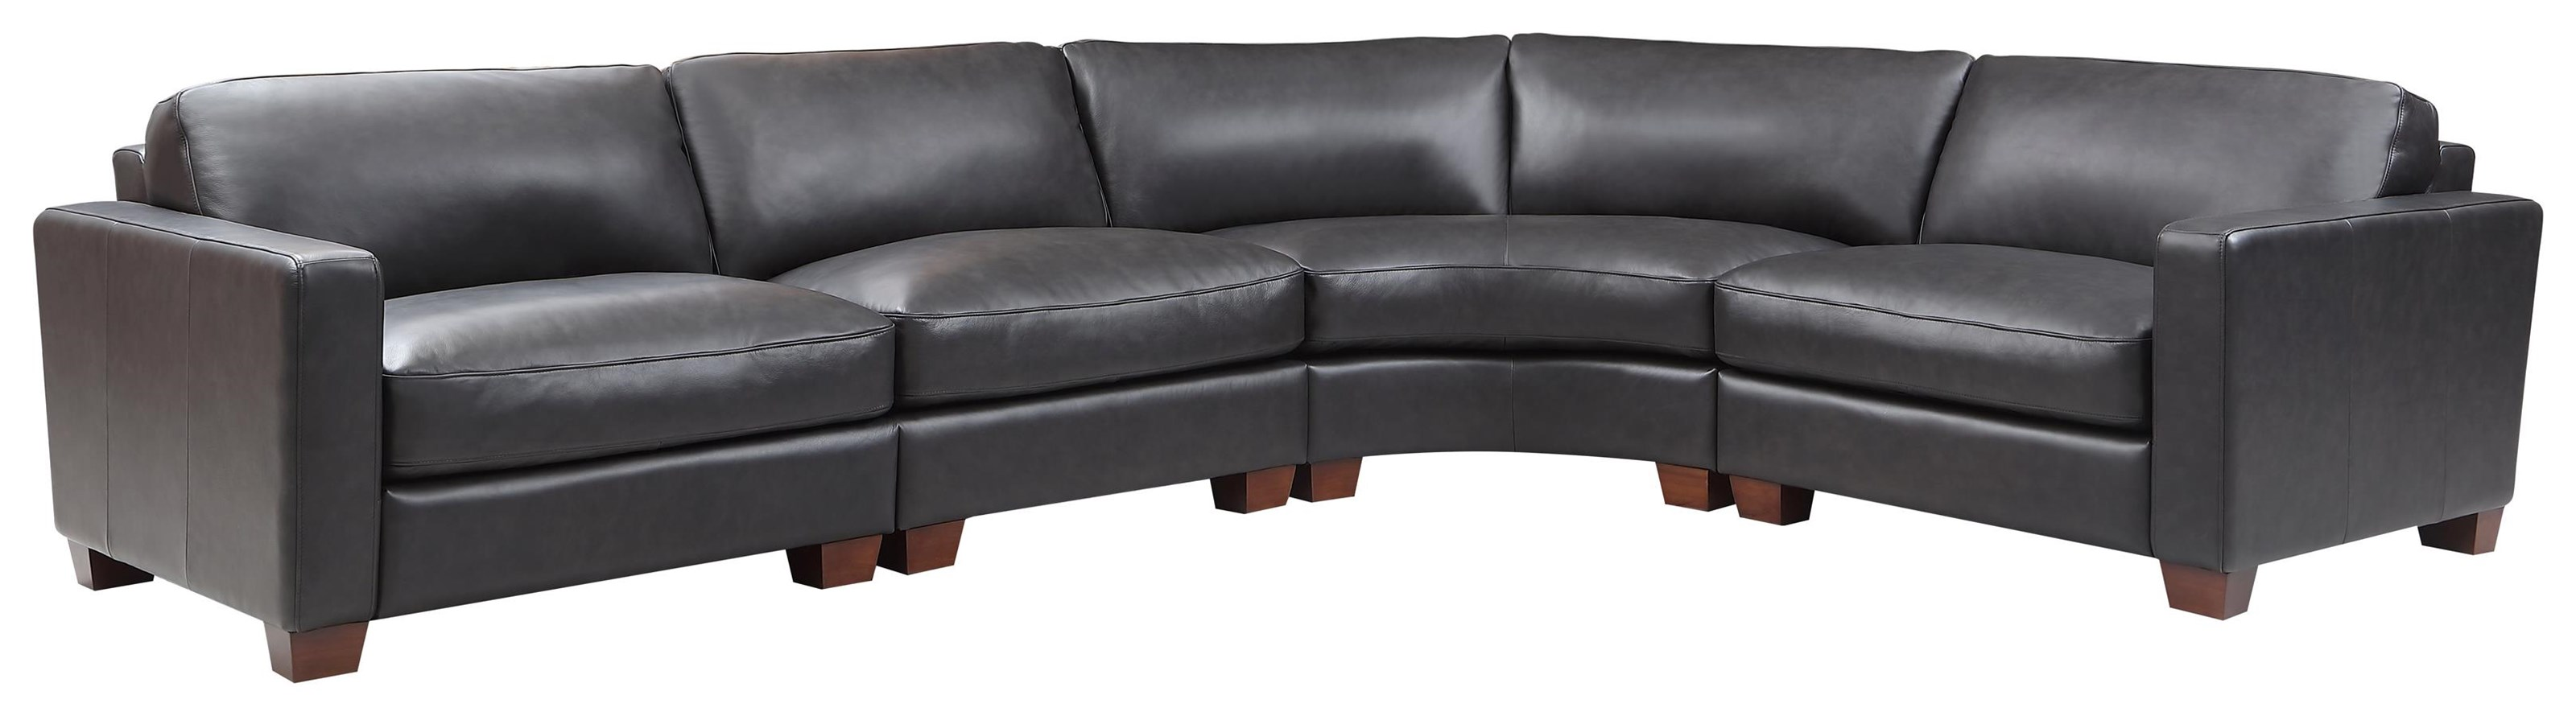 Brent 4 Piece Sectional by Leather Italia USA at Johnny Janosik